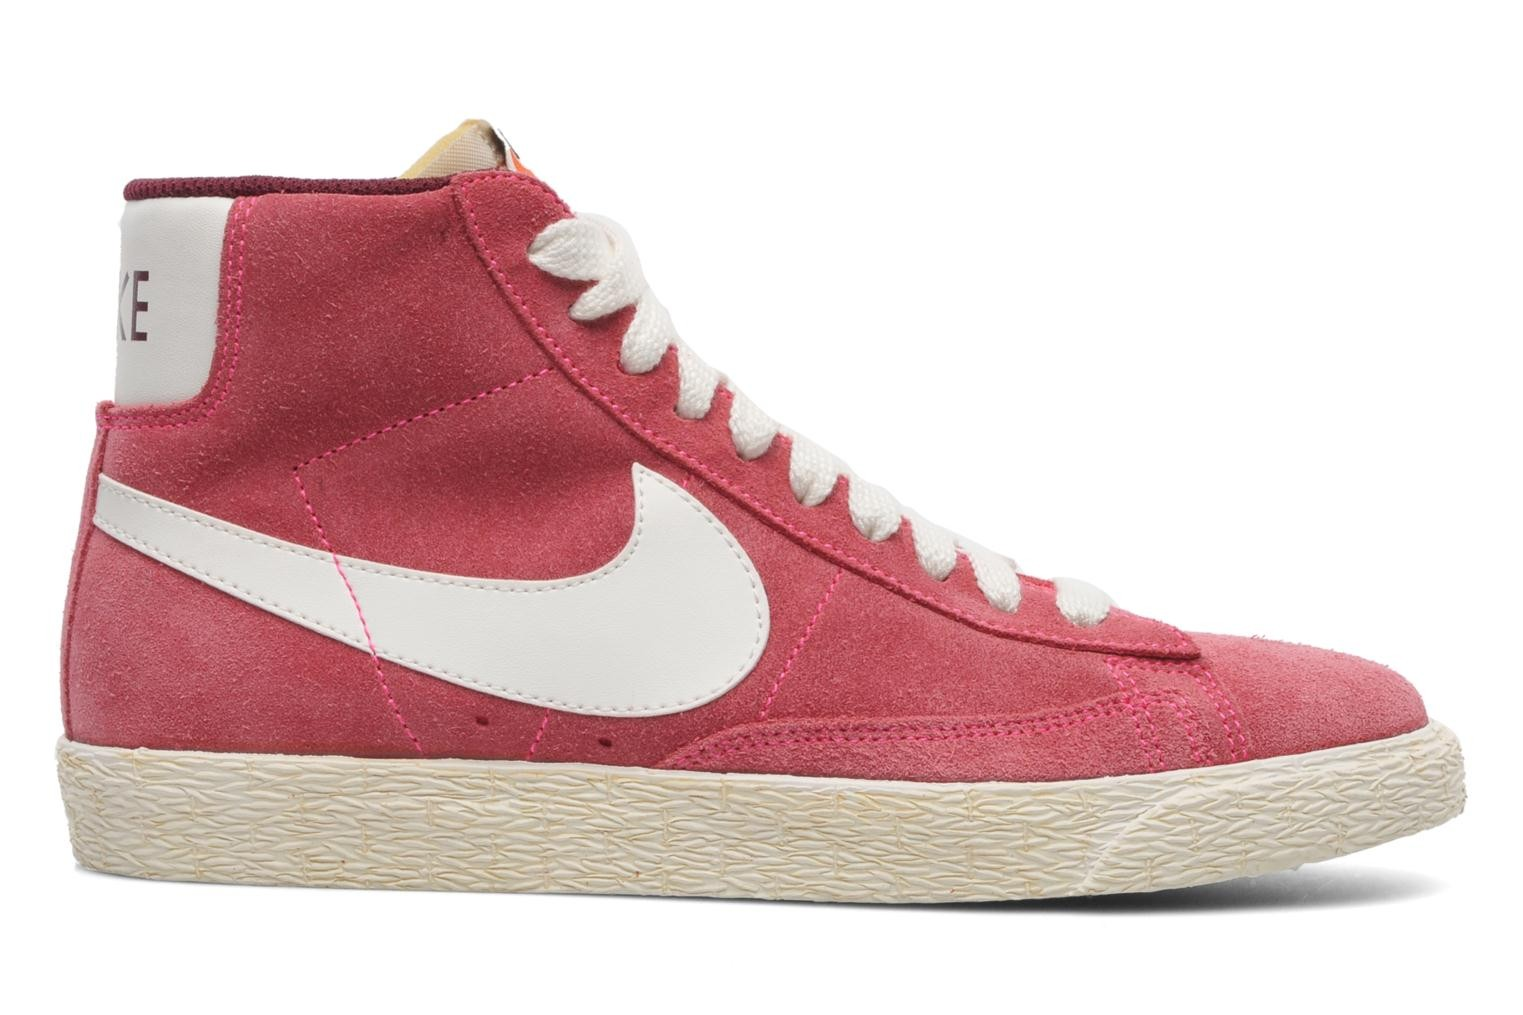 nike blazer mid pink high top trainers